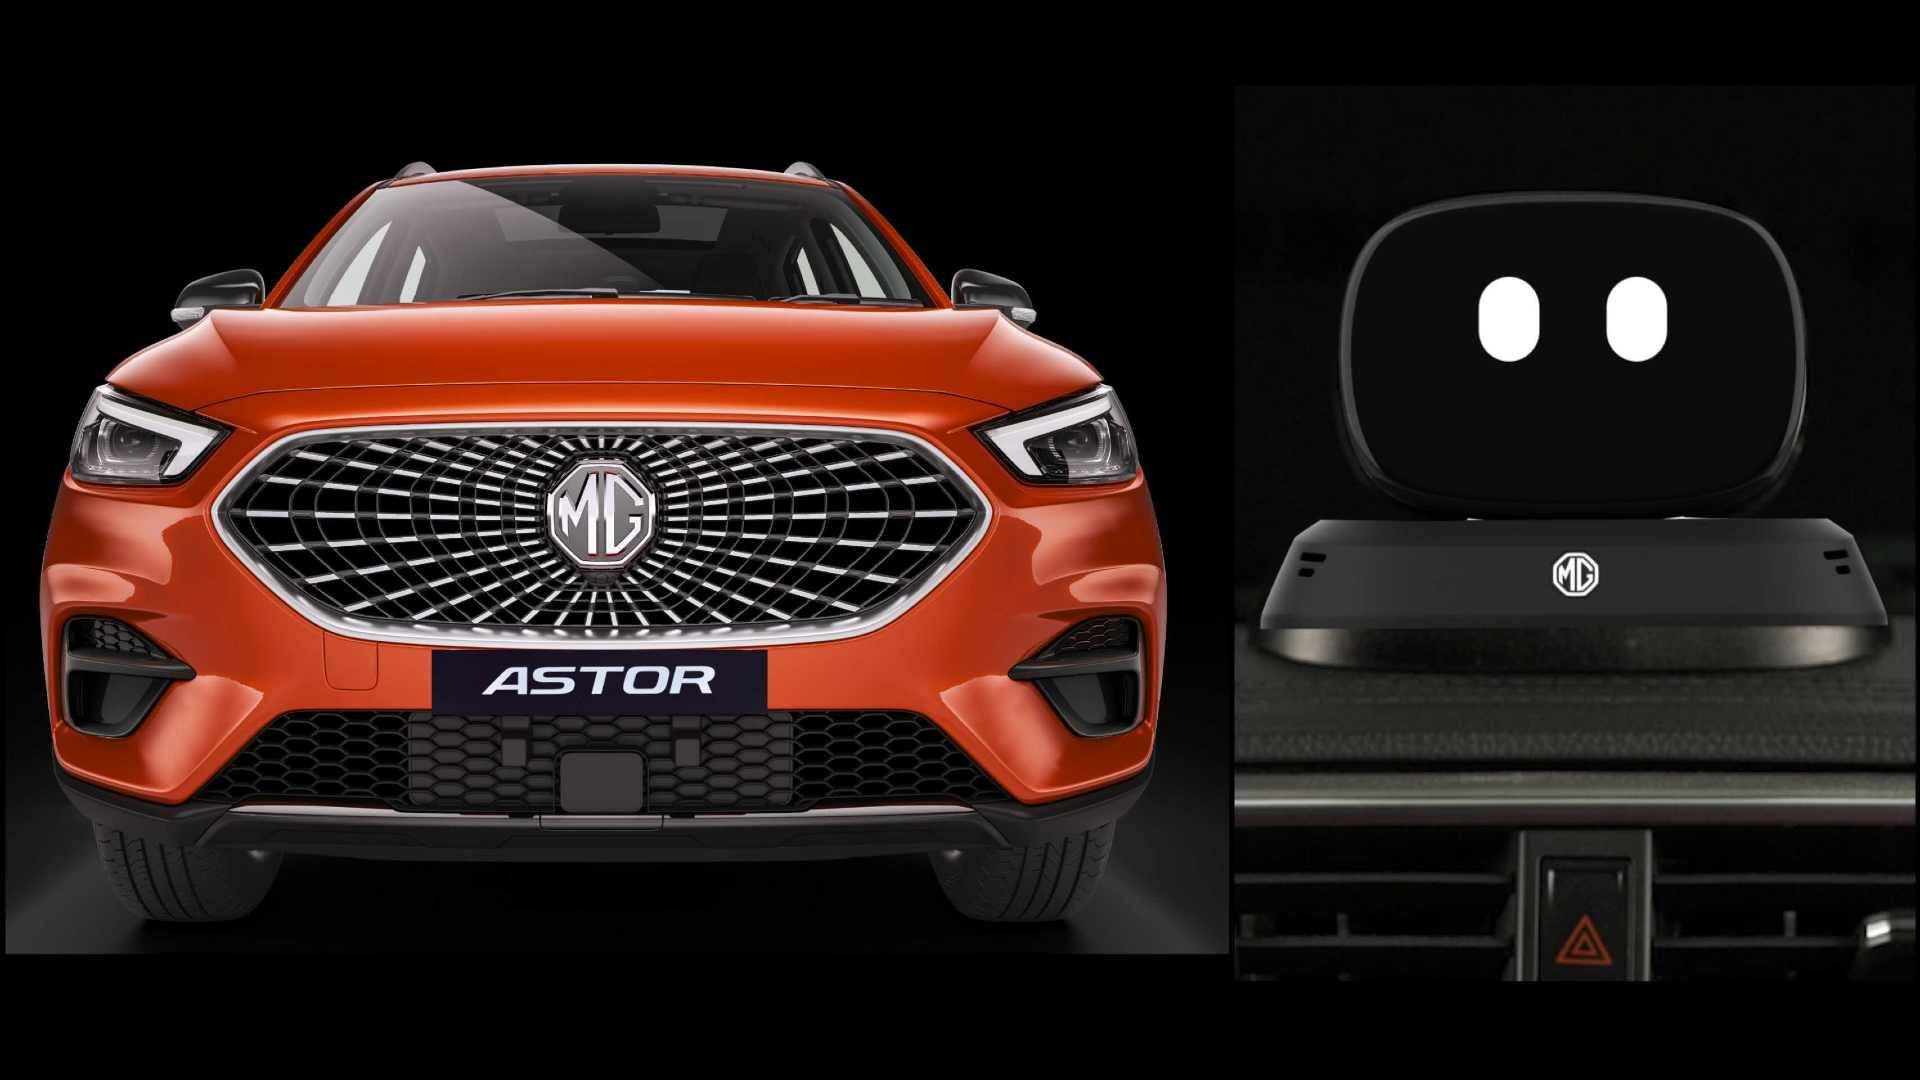 The MG Astor is the first SUV in India to feature an AI-powered robot inside the vehicle. Image: MG Motor India